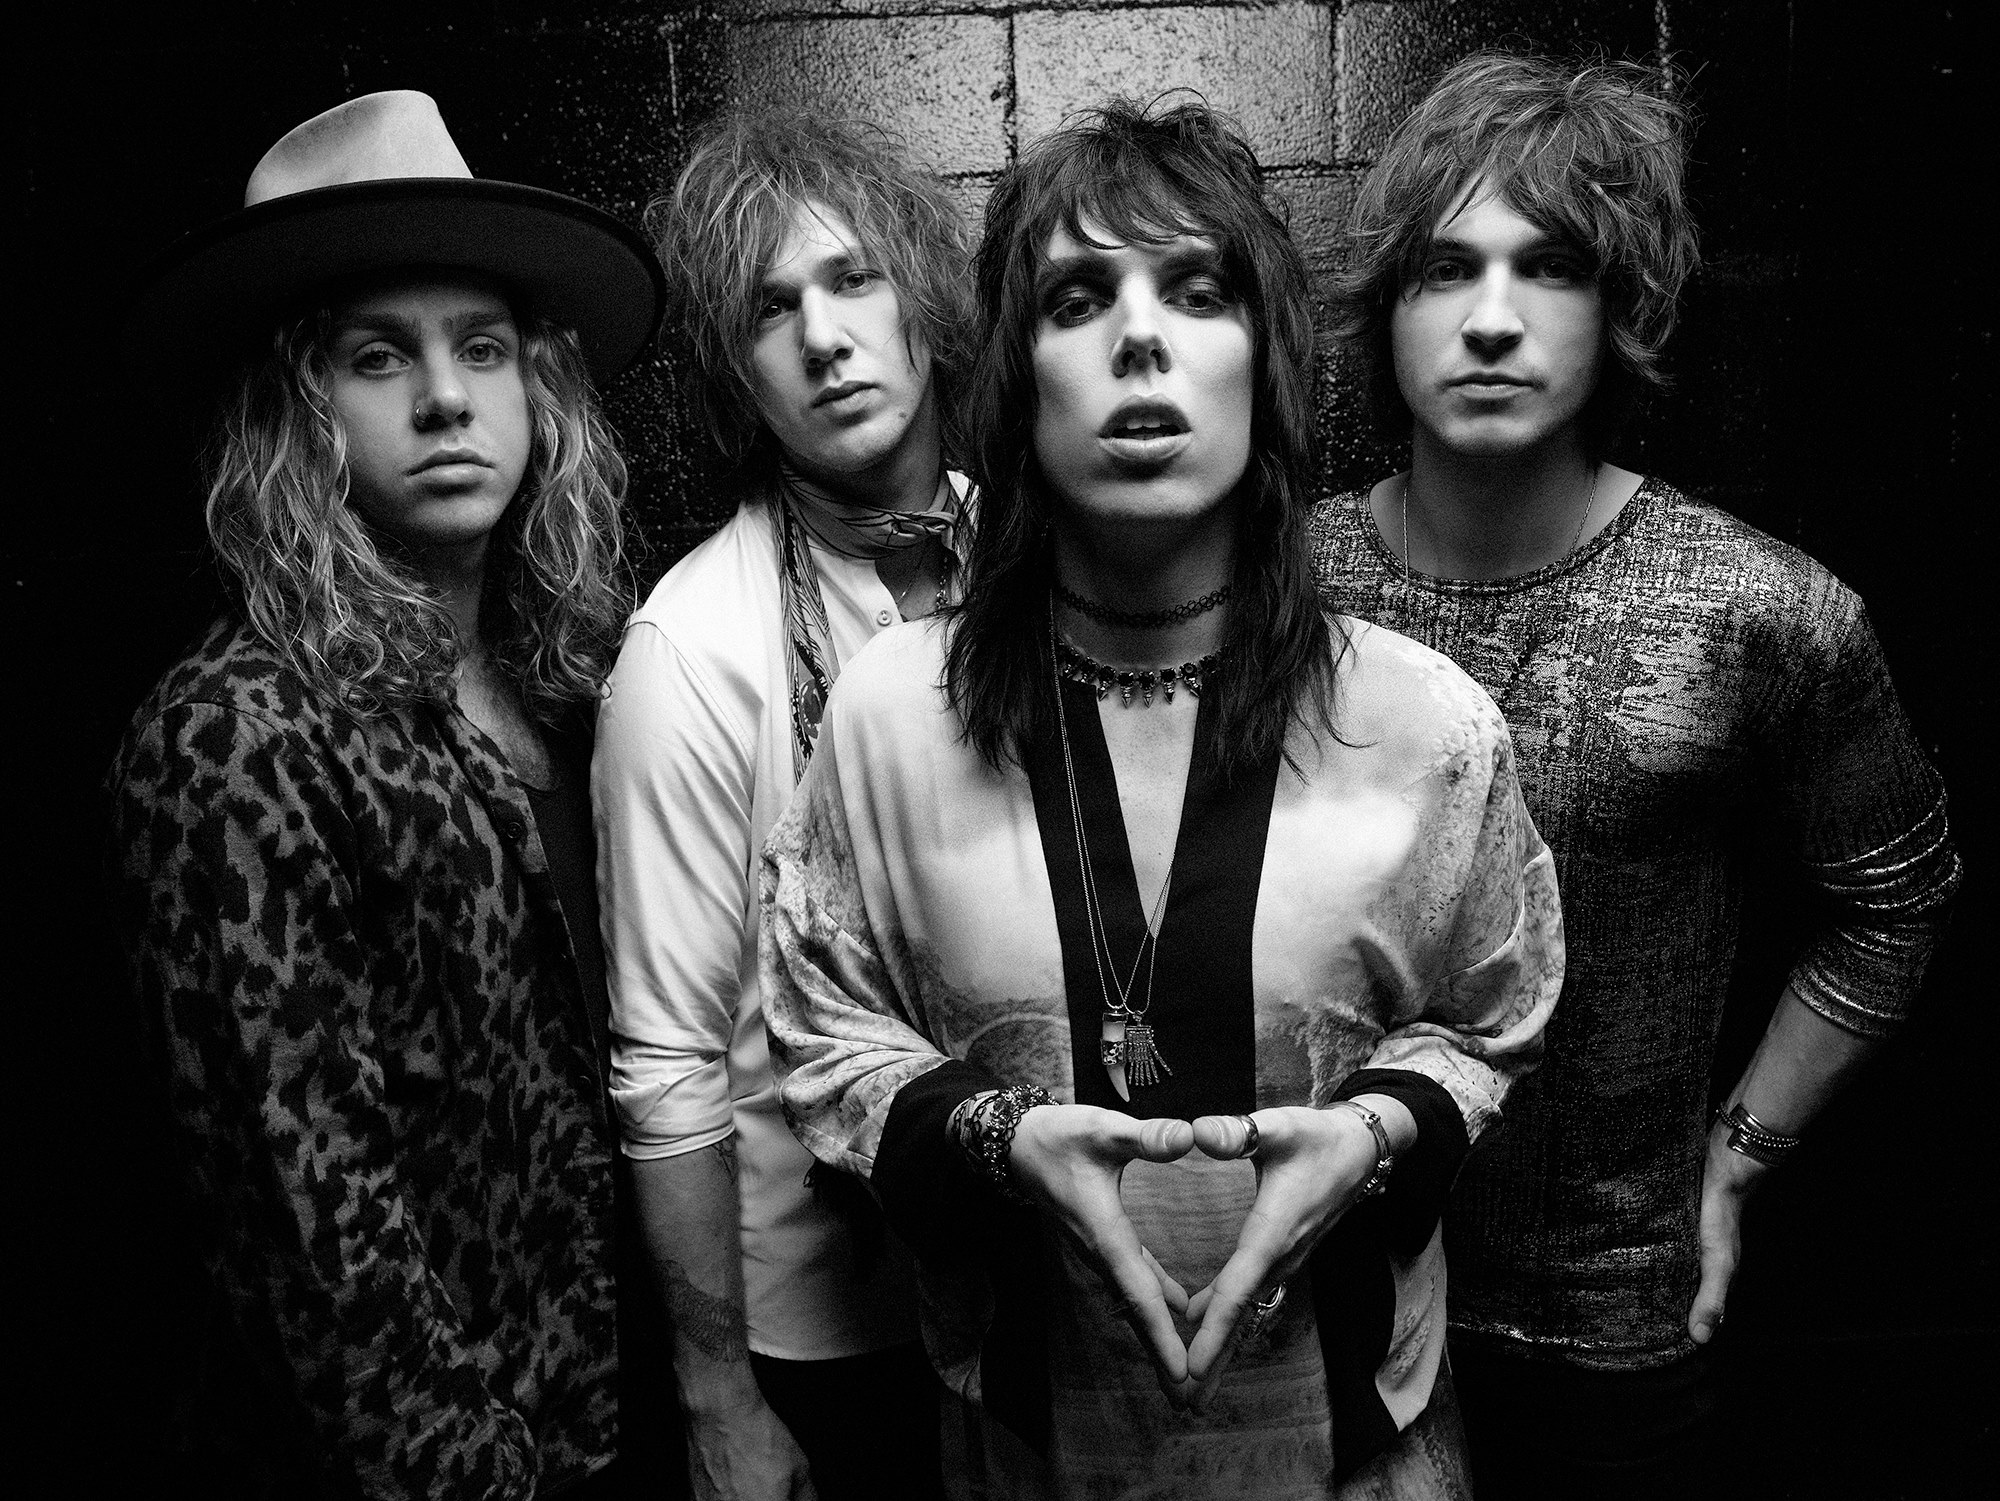 English rockers The Struts will play The Rapids Theatre in Niagara Falls on May 18.